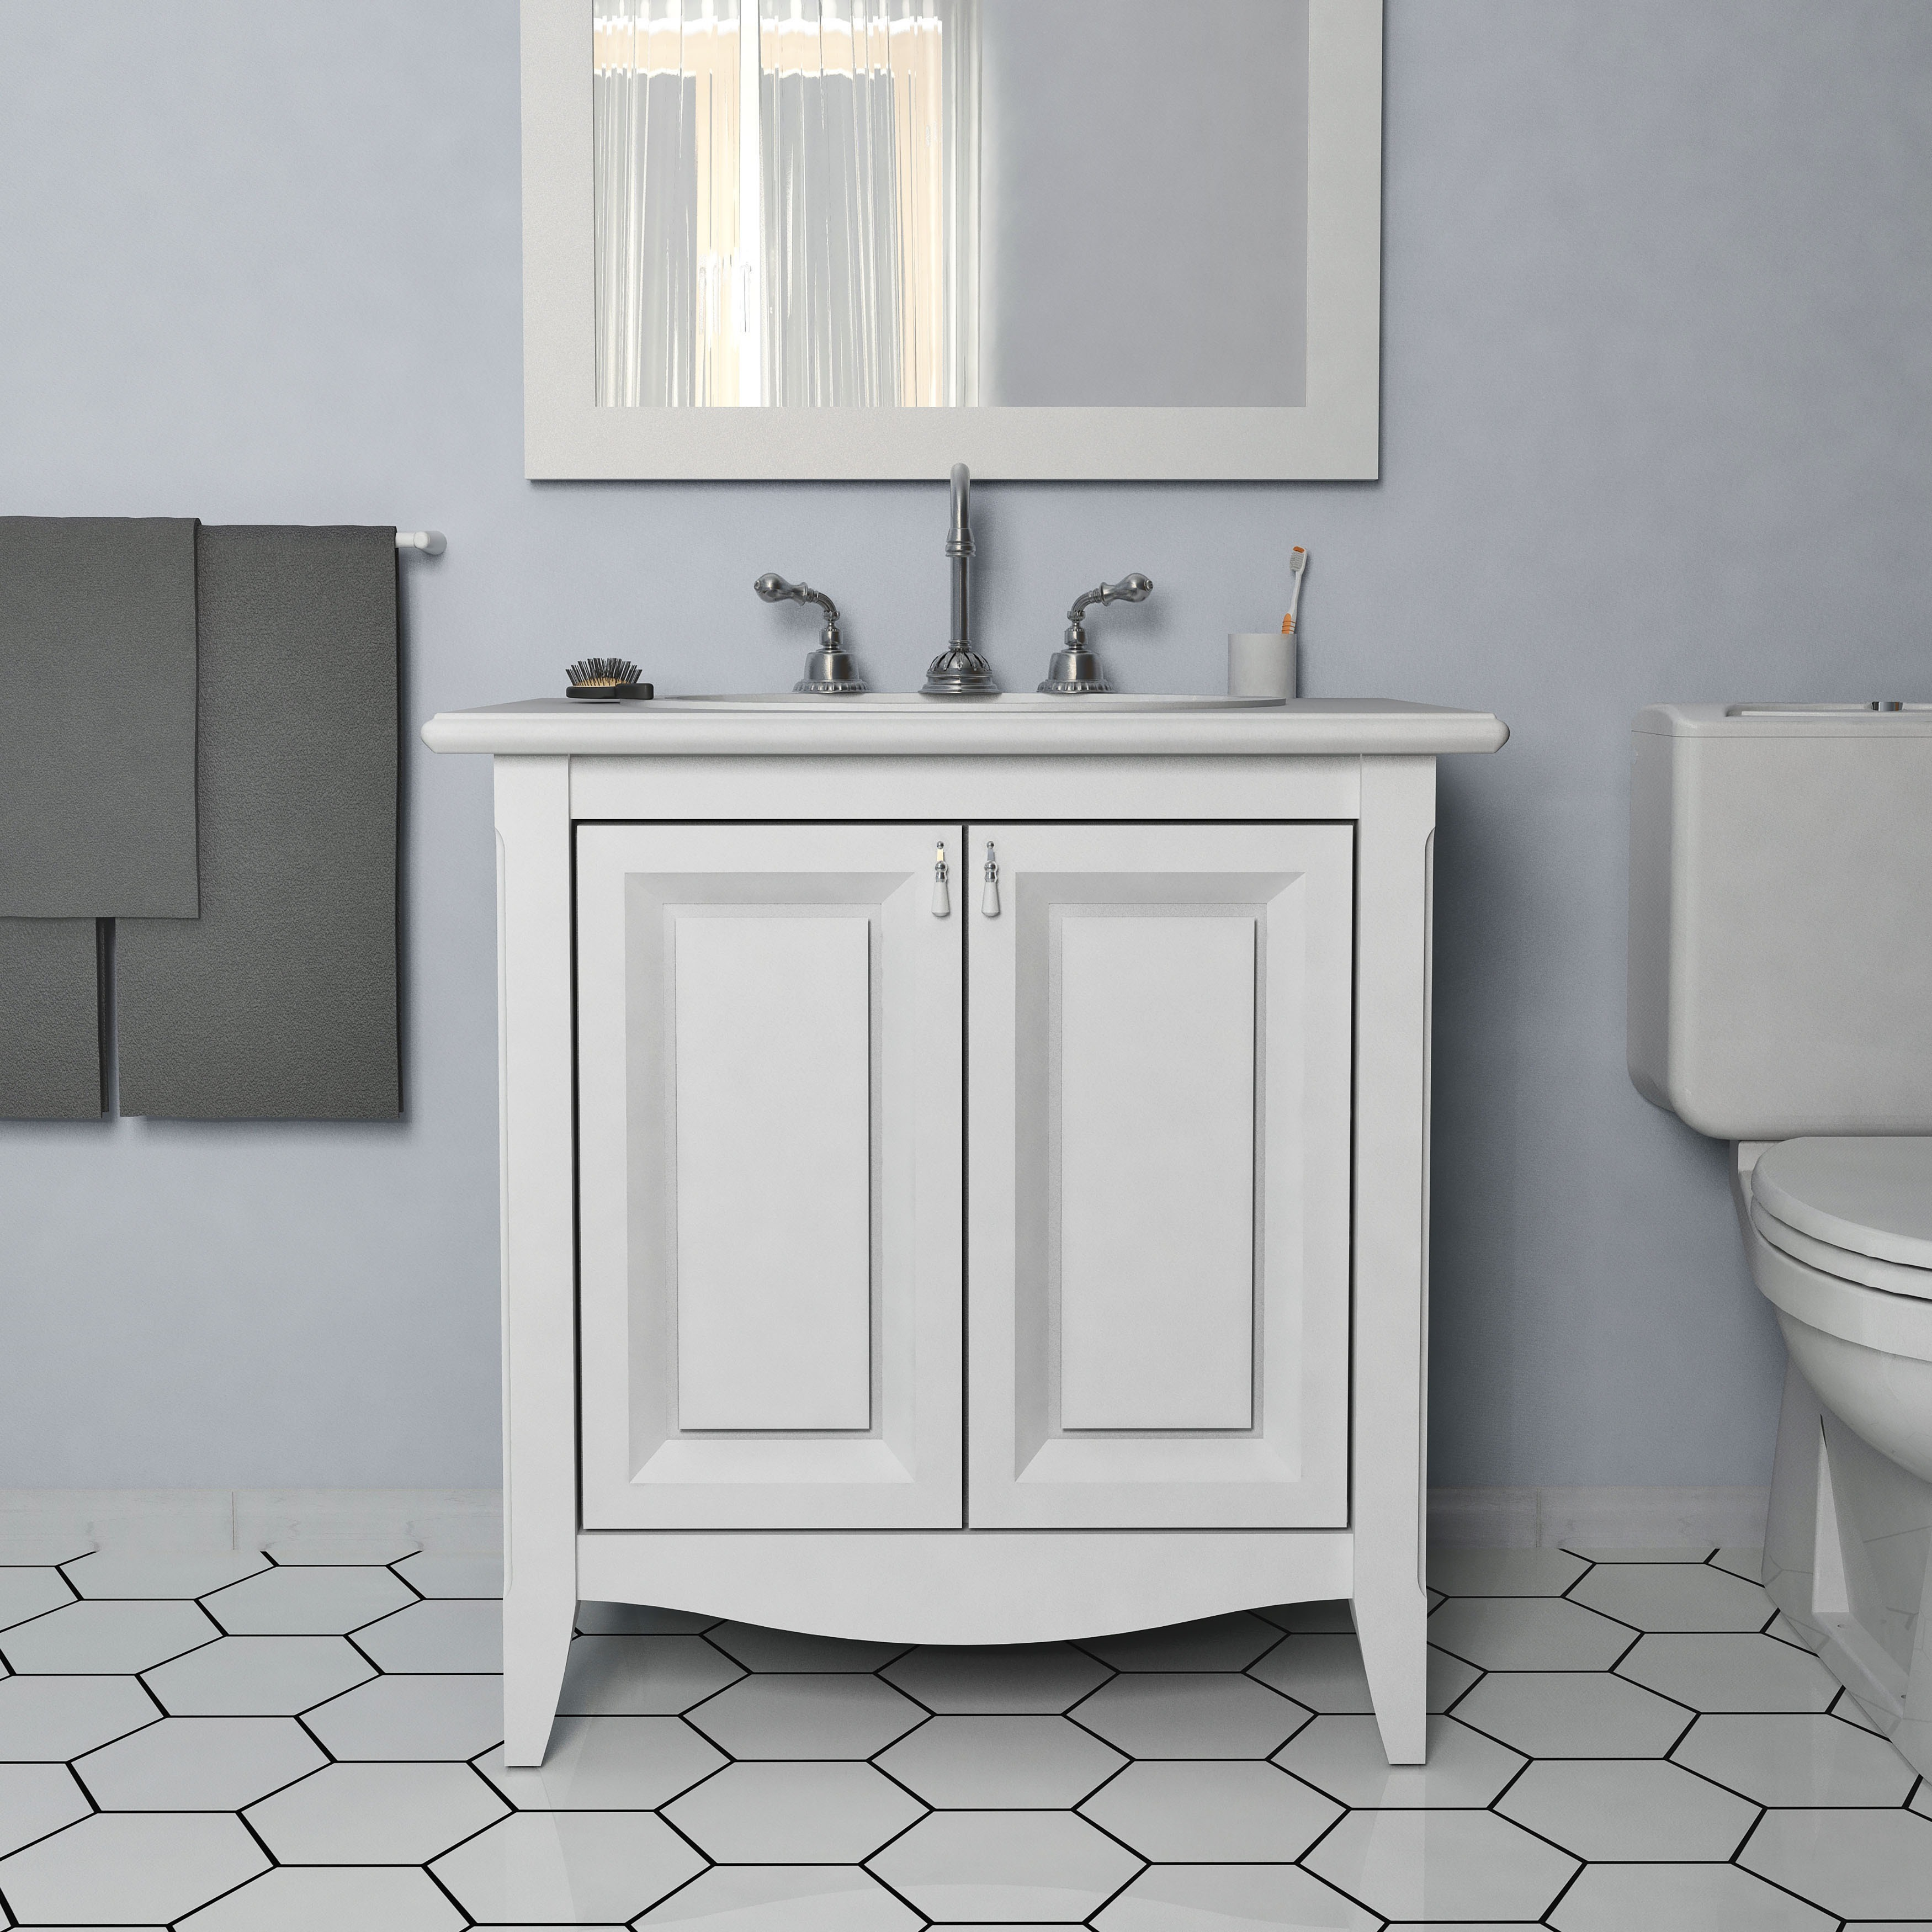 Somertile 7x8 inch hextile glossy grey ceramic floor and wall tile somertile 7x8 inch hextile glossy grey ceramic floor and wall tile 14 tiles44 sqft free shipping on orders over 45 overstock 15742524 dailygadgetfo Gallery